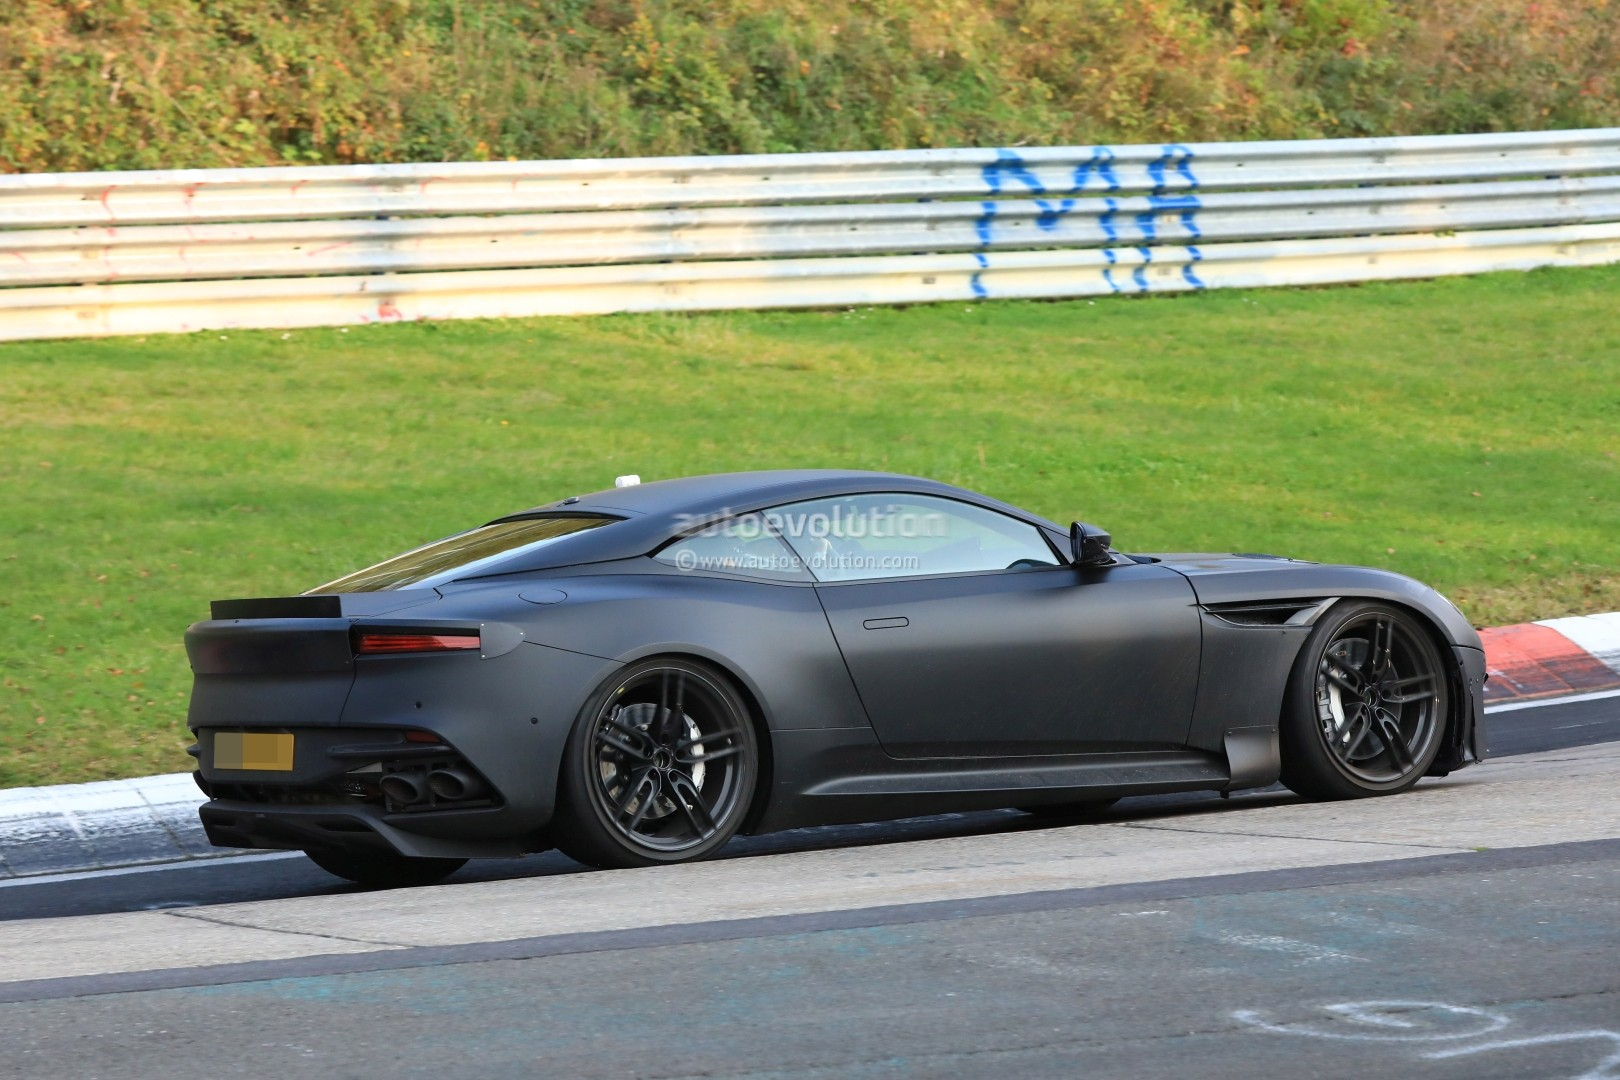 2019 aston martin vanquish spied on nurburgring hybridisation rumors intensify autoevolution. Black Bedroom Furniture Sets. Home Design Ideas